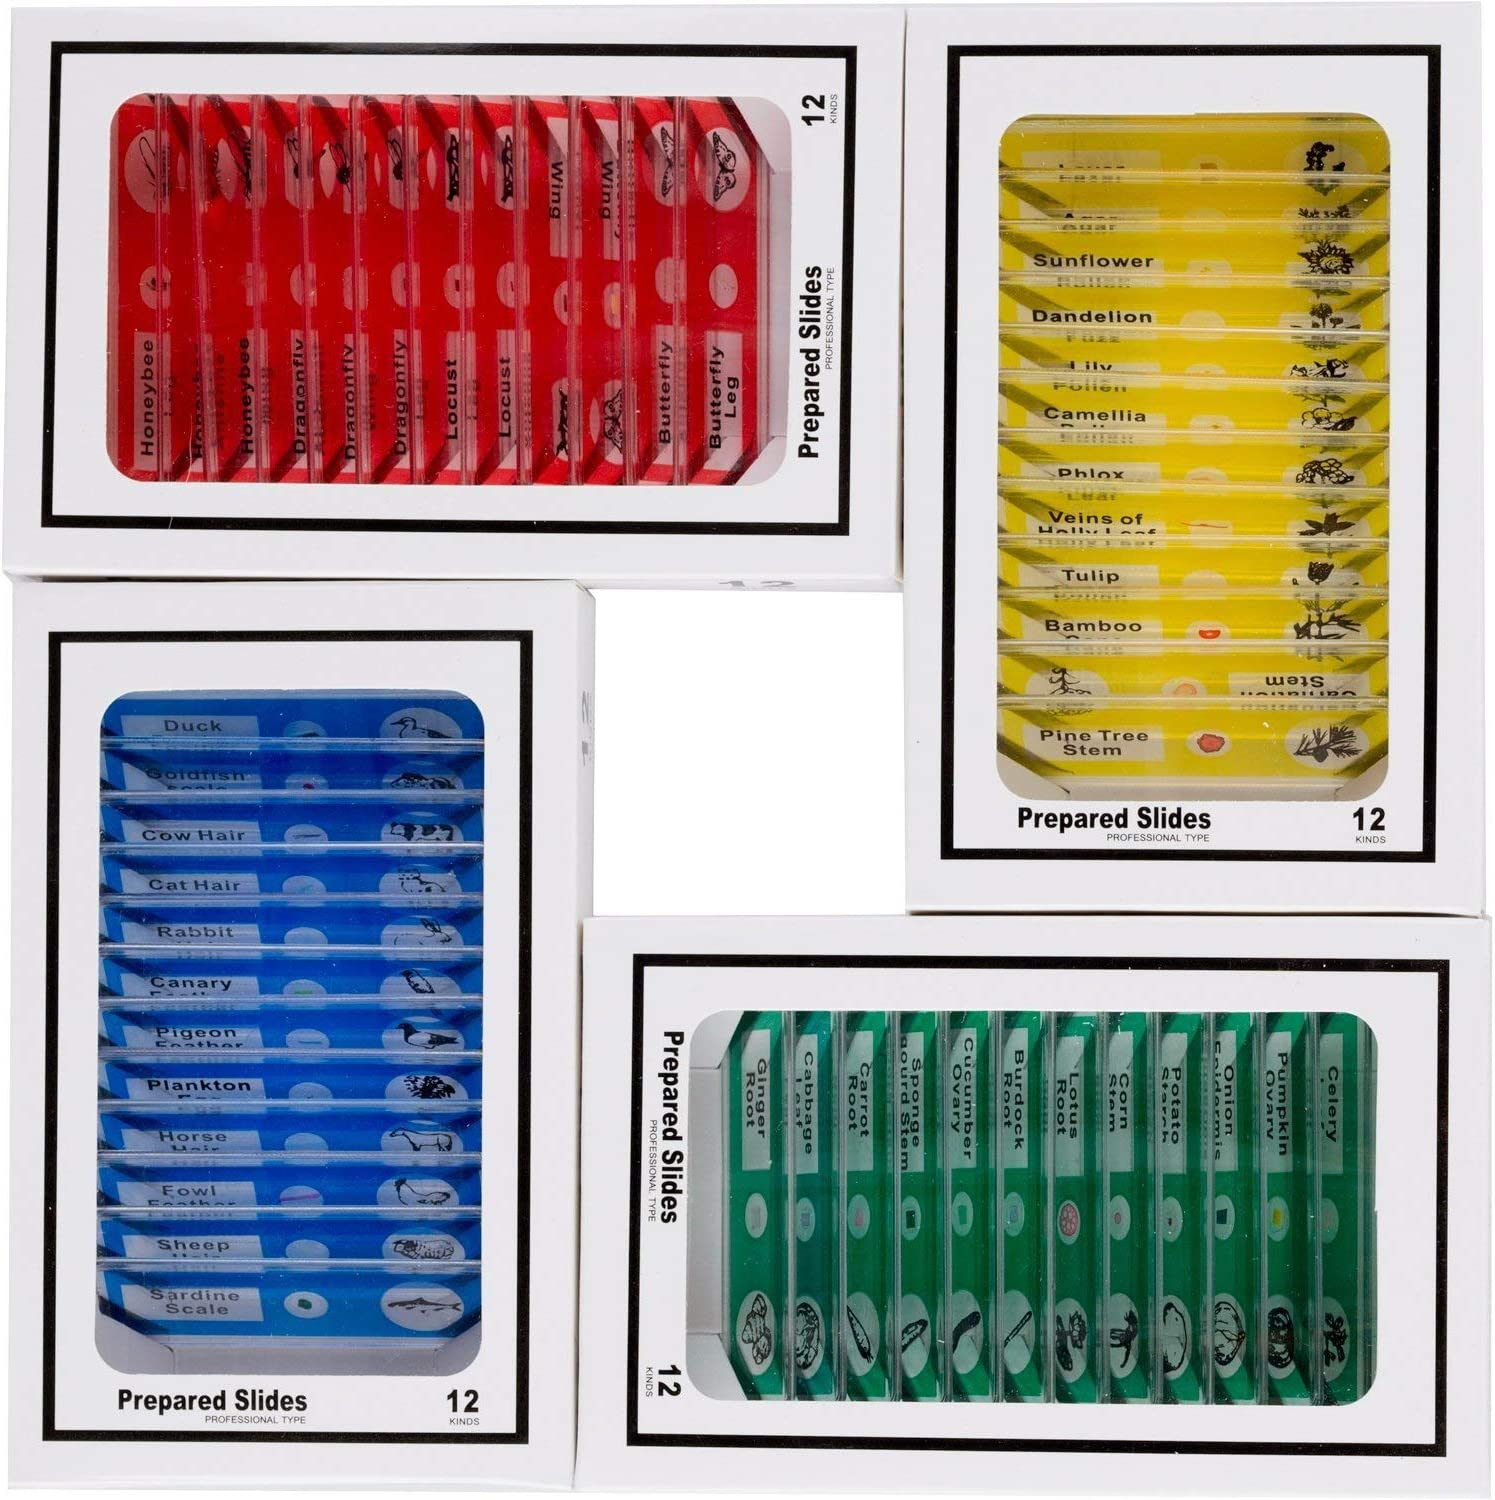 Specimens for Stereo Microscopes #2-002 Flowers Insects RURING Kids Microscope Slide Kit 48pcs Plastic Prepared Microscope Slides of Animals,Plants